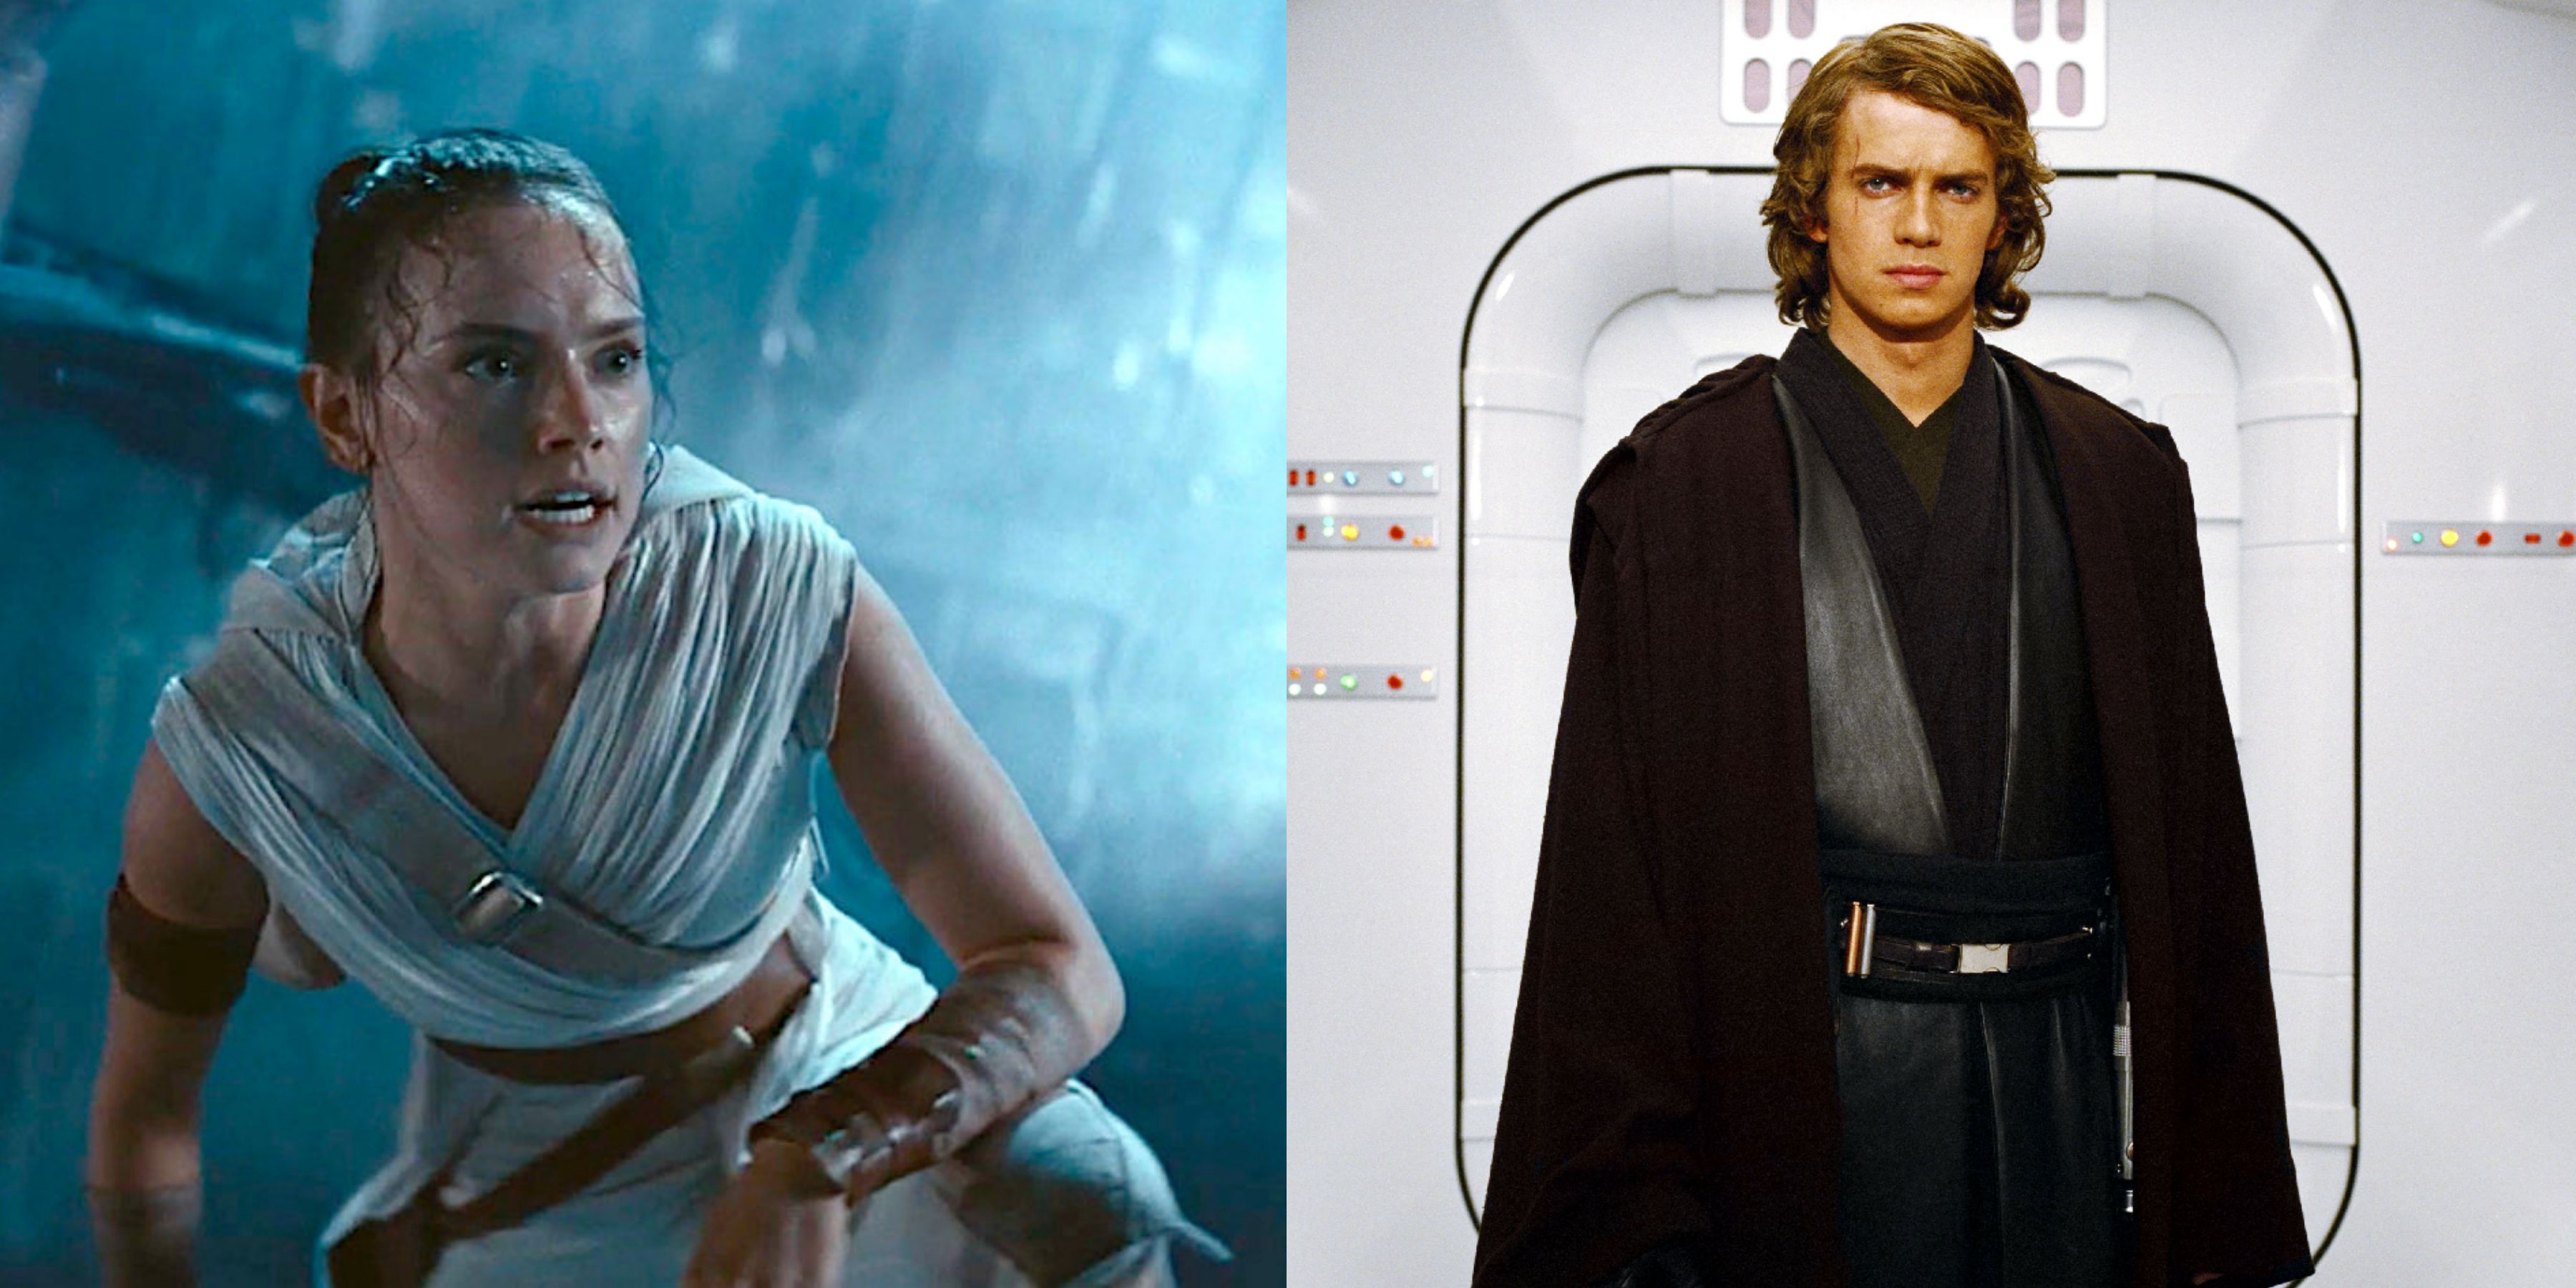 Star Wars Hayden Christensen The Rise Of Skywalker Theory Will Anakin Return In Tros